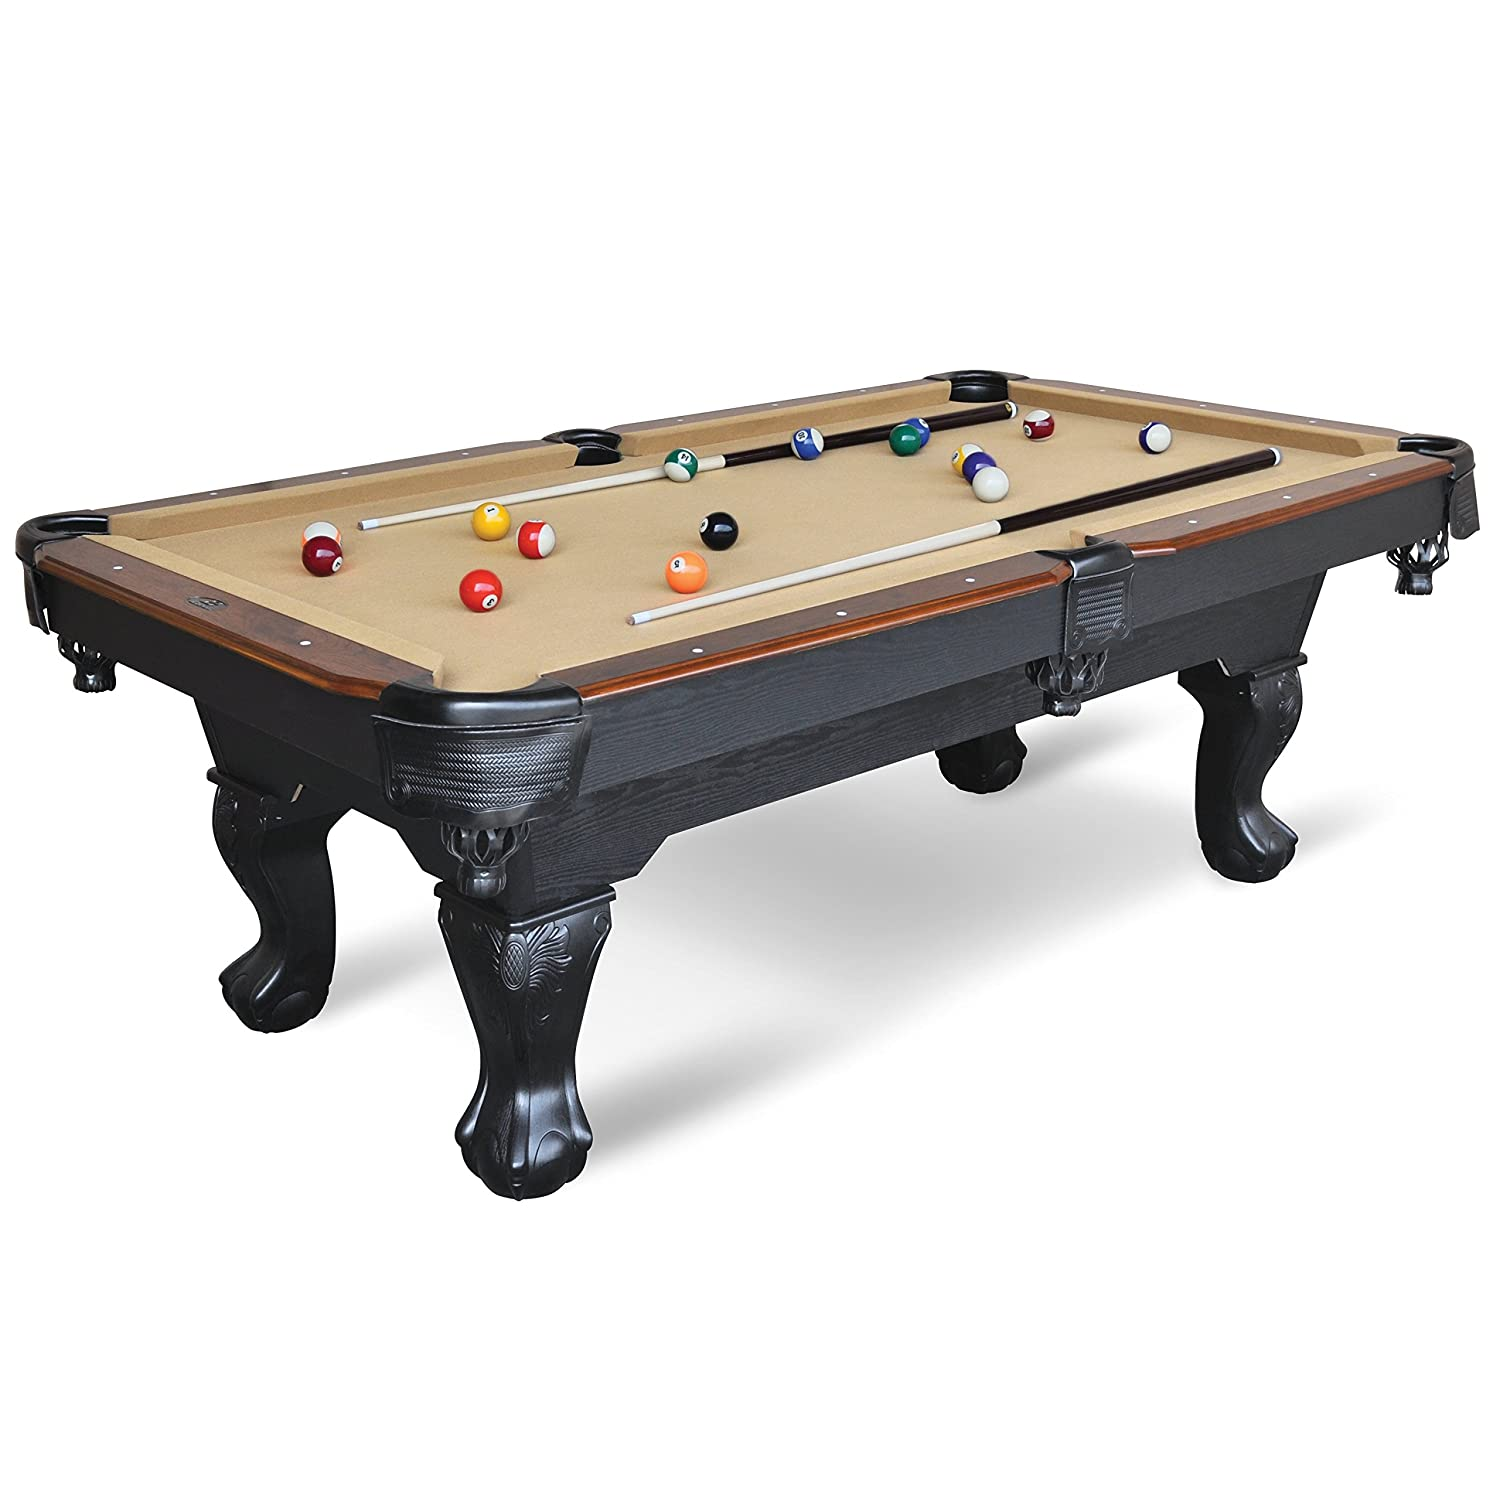 playmore cheap pool table sale romanwithdrawer tables for games